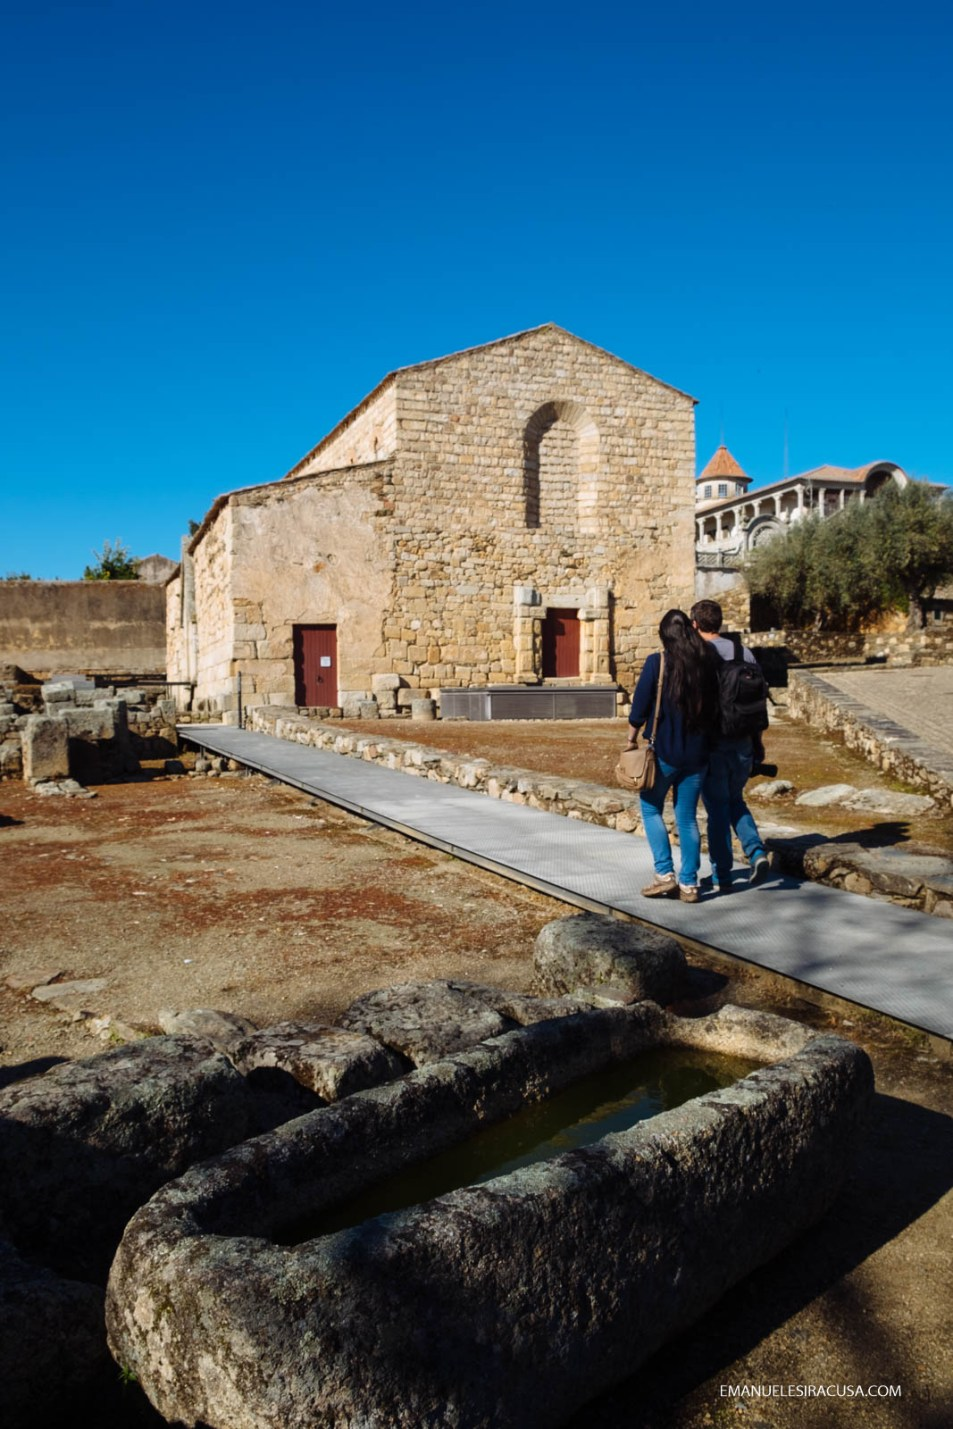 A couple of tourists walks by the Sé, Cathedral of Idanha a Velha, 2016